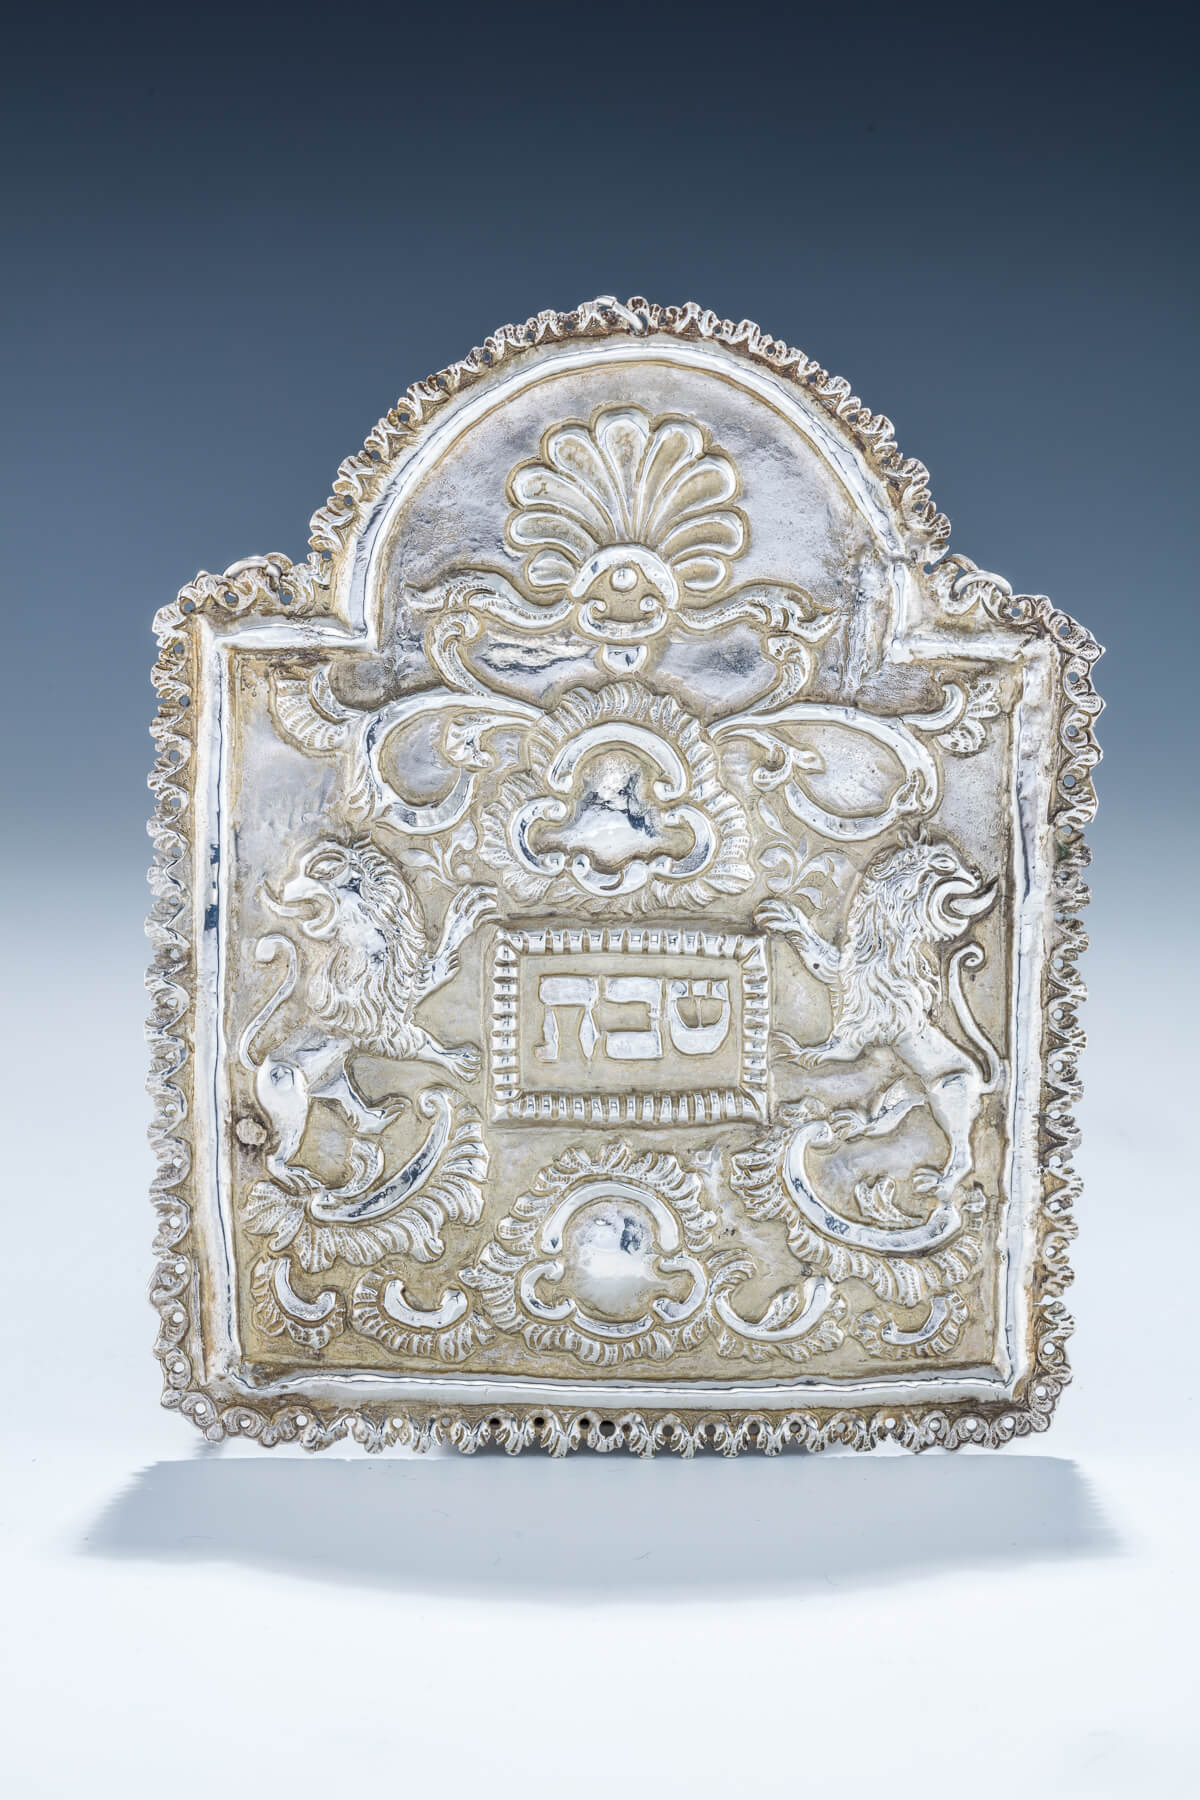 90. An Early Silver Torah Shield